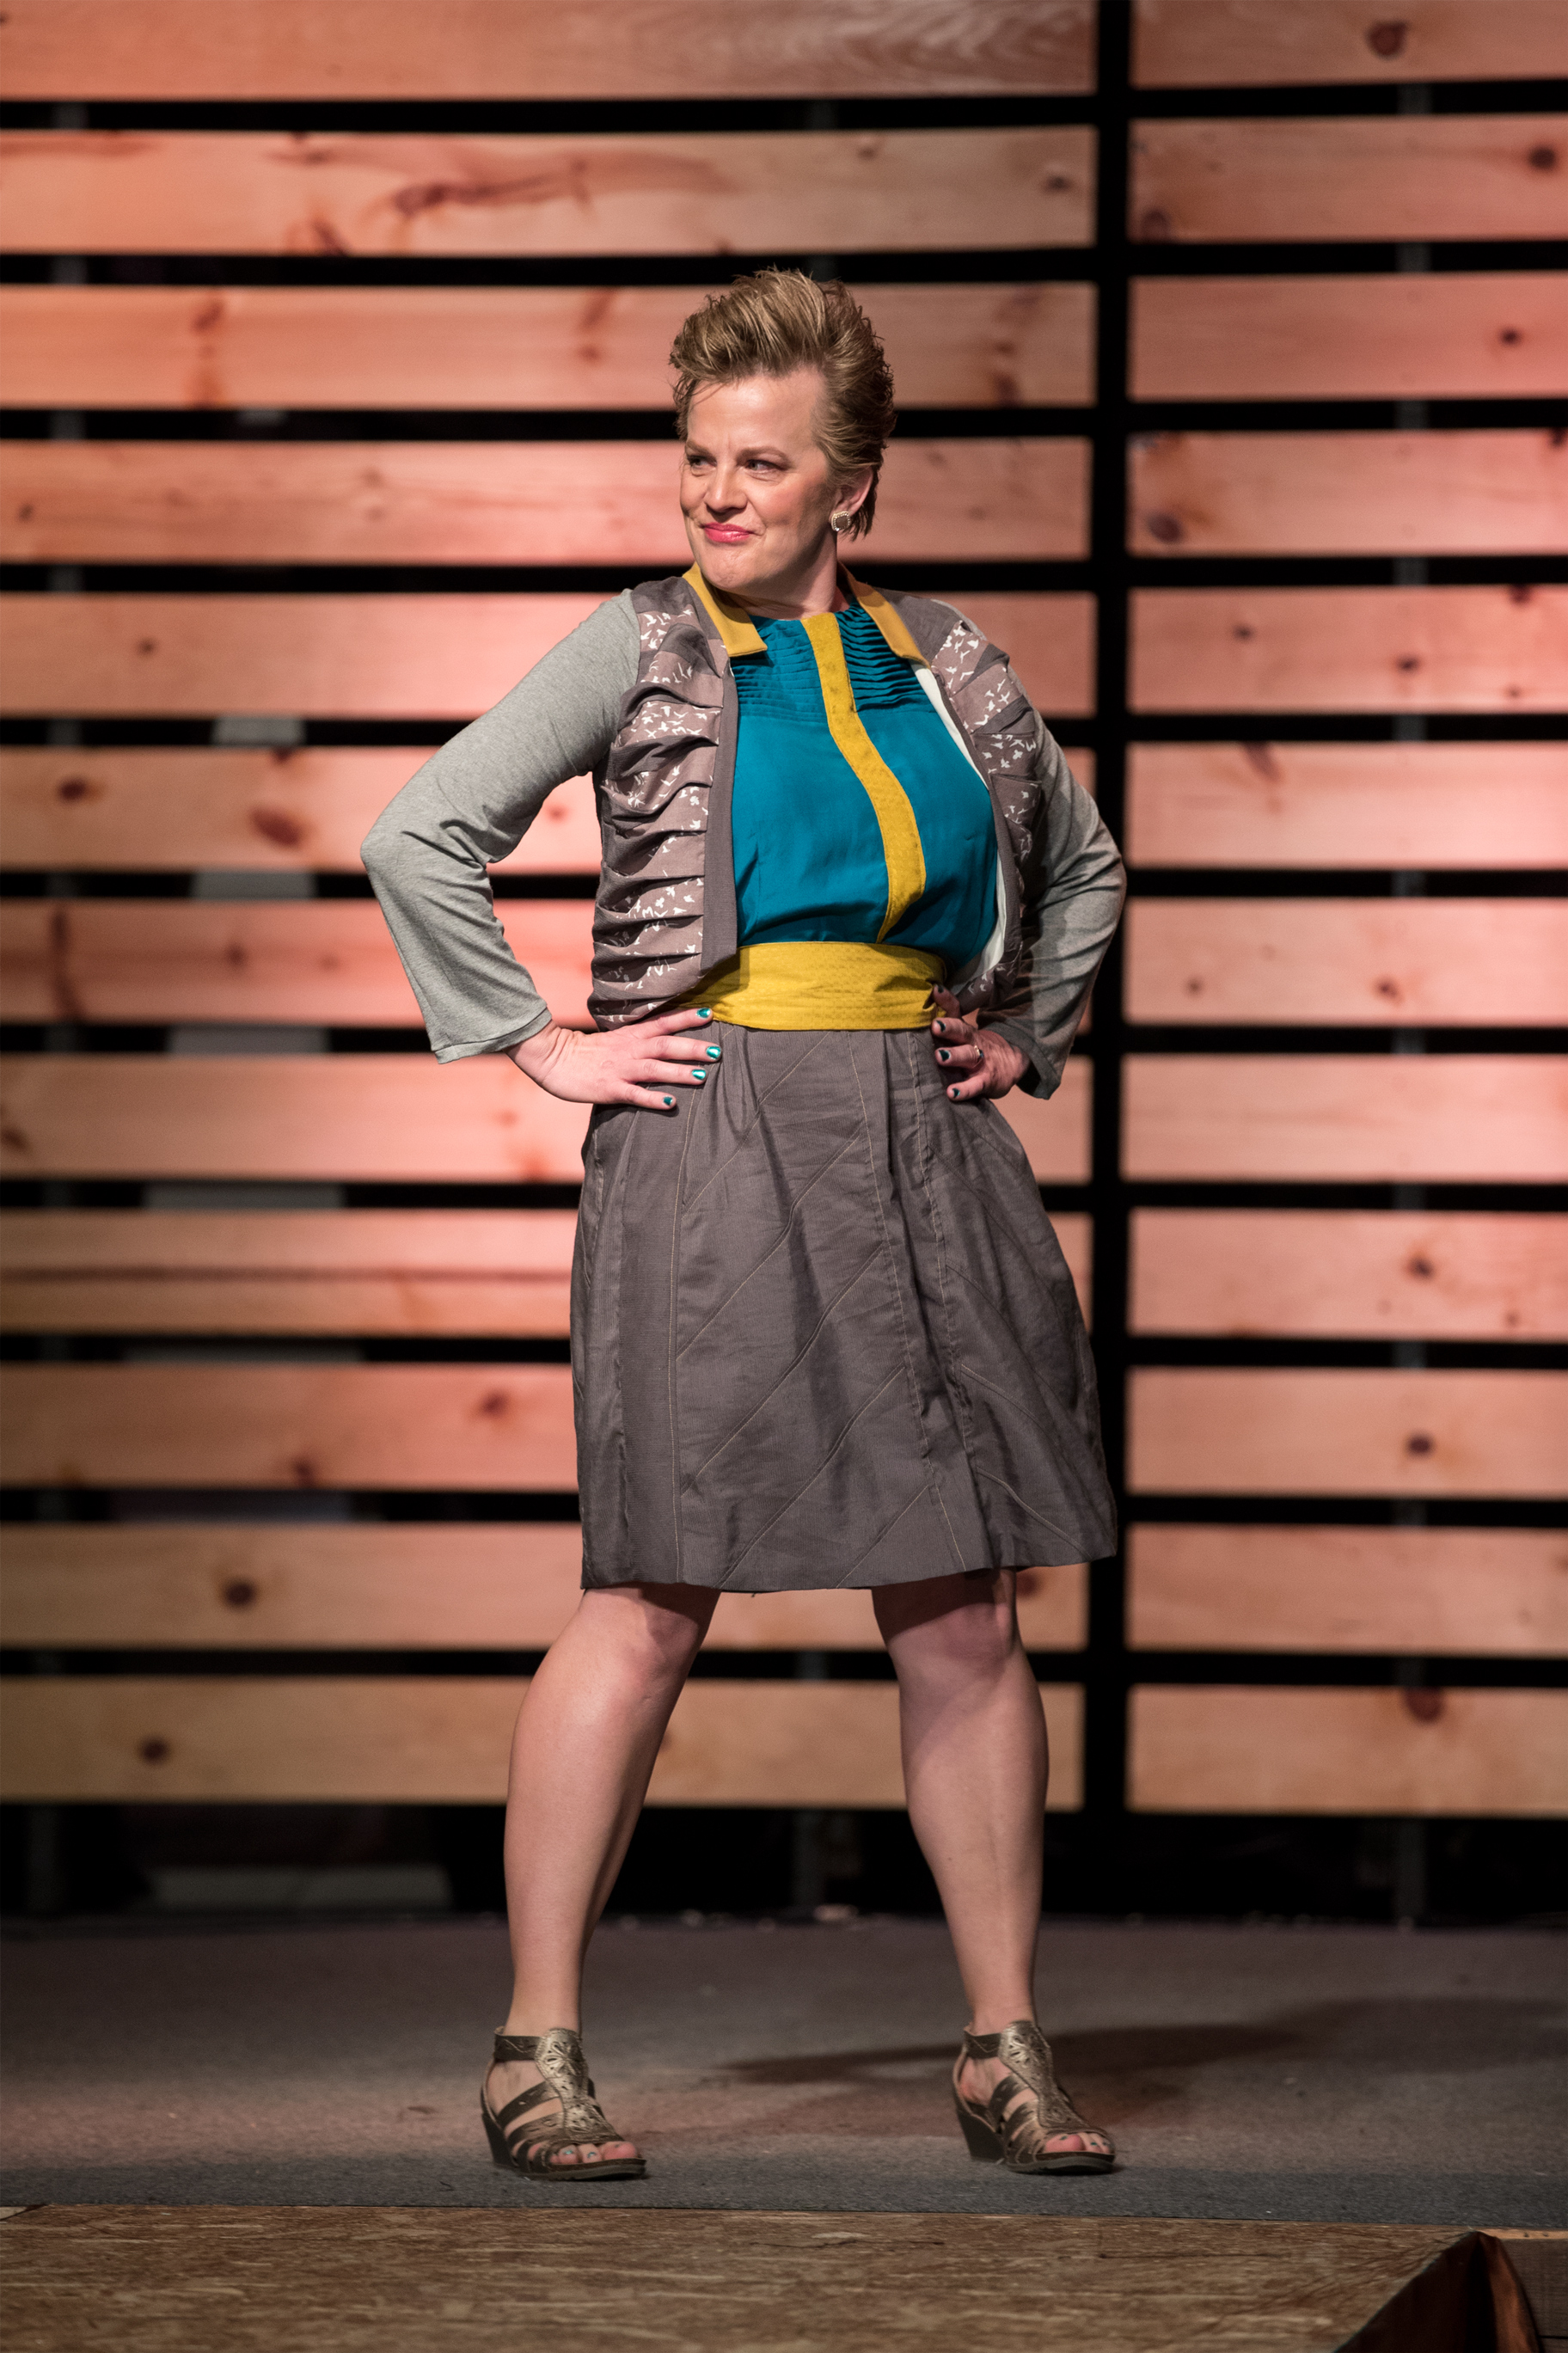 Mission Wear Upcycled Patchwork Fashion Show - 065.jpg